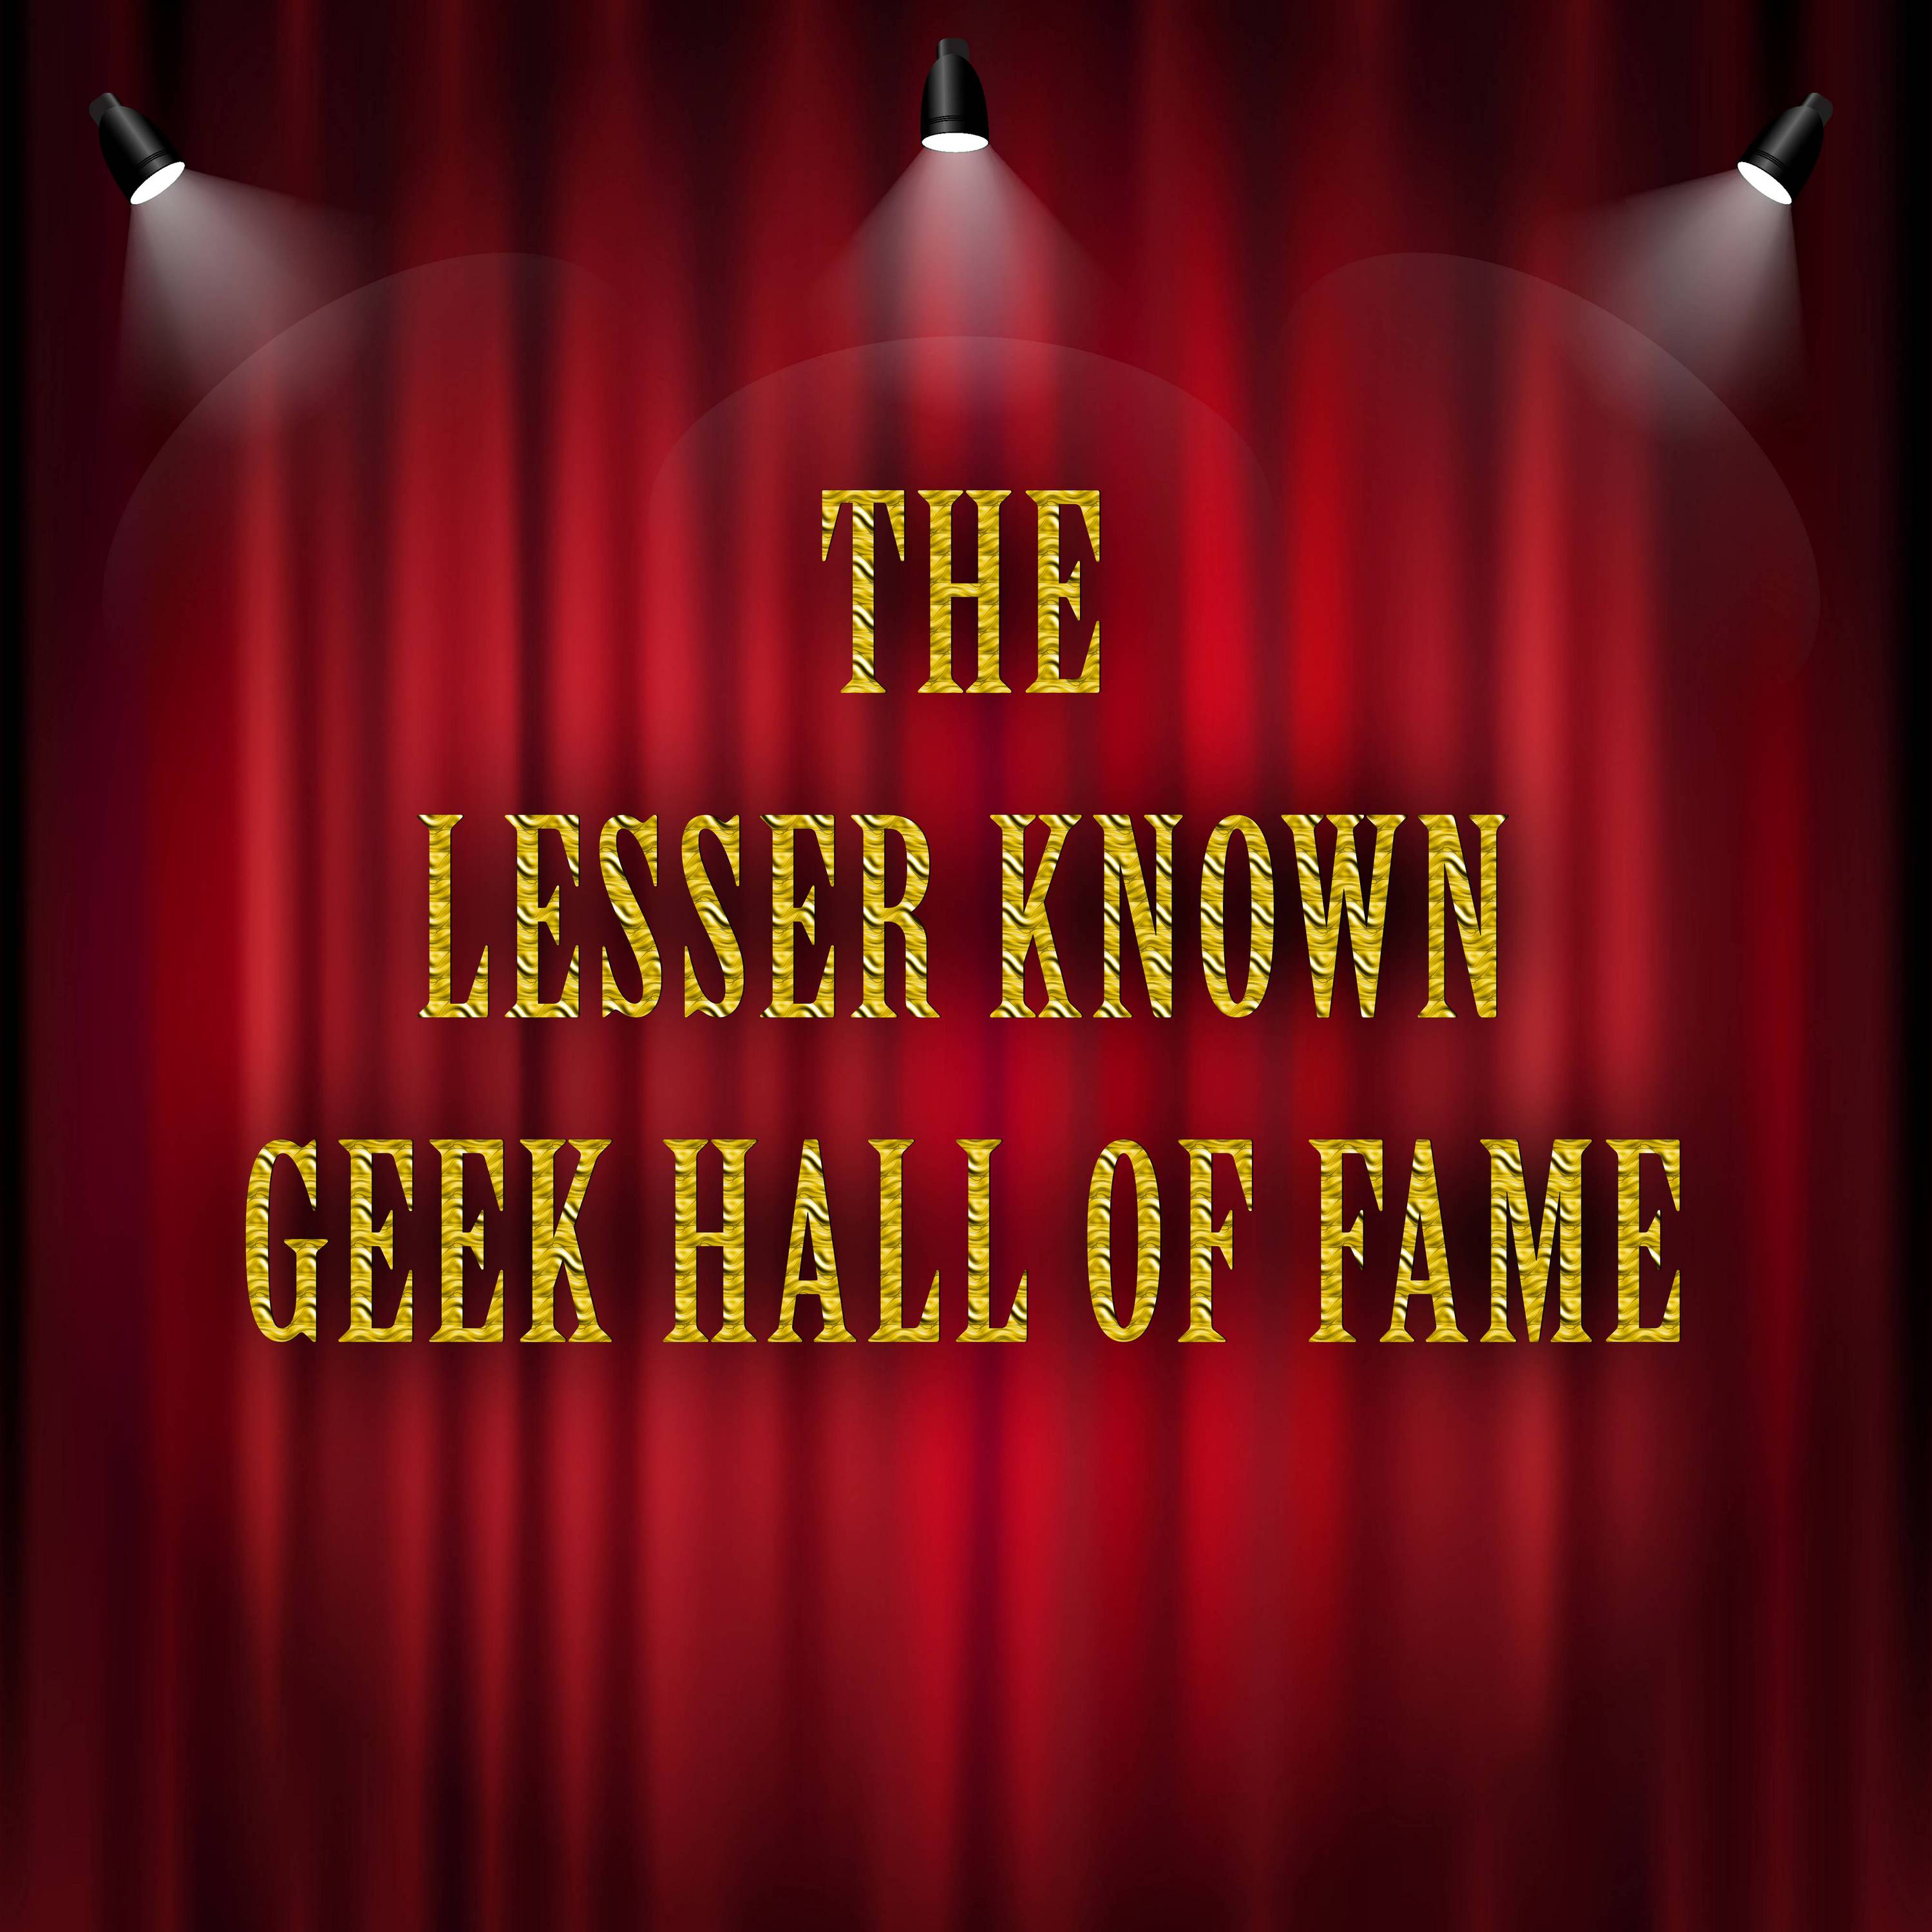 The Lesser Known Geek Hall Of Fame